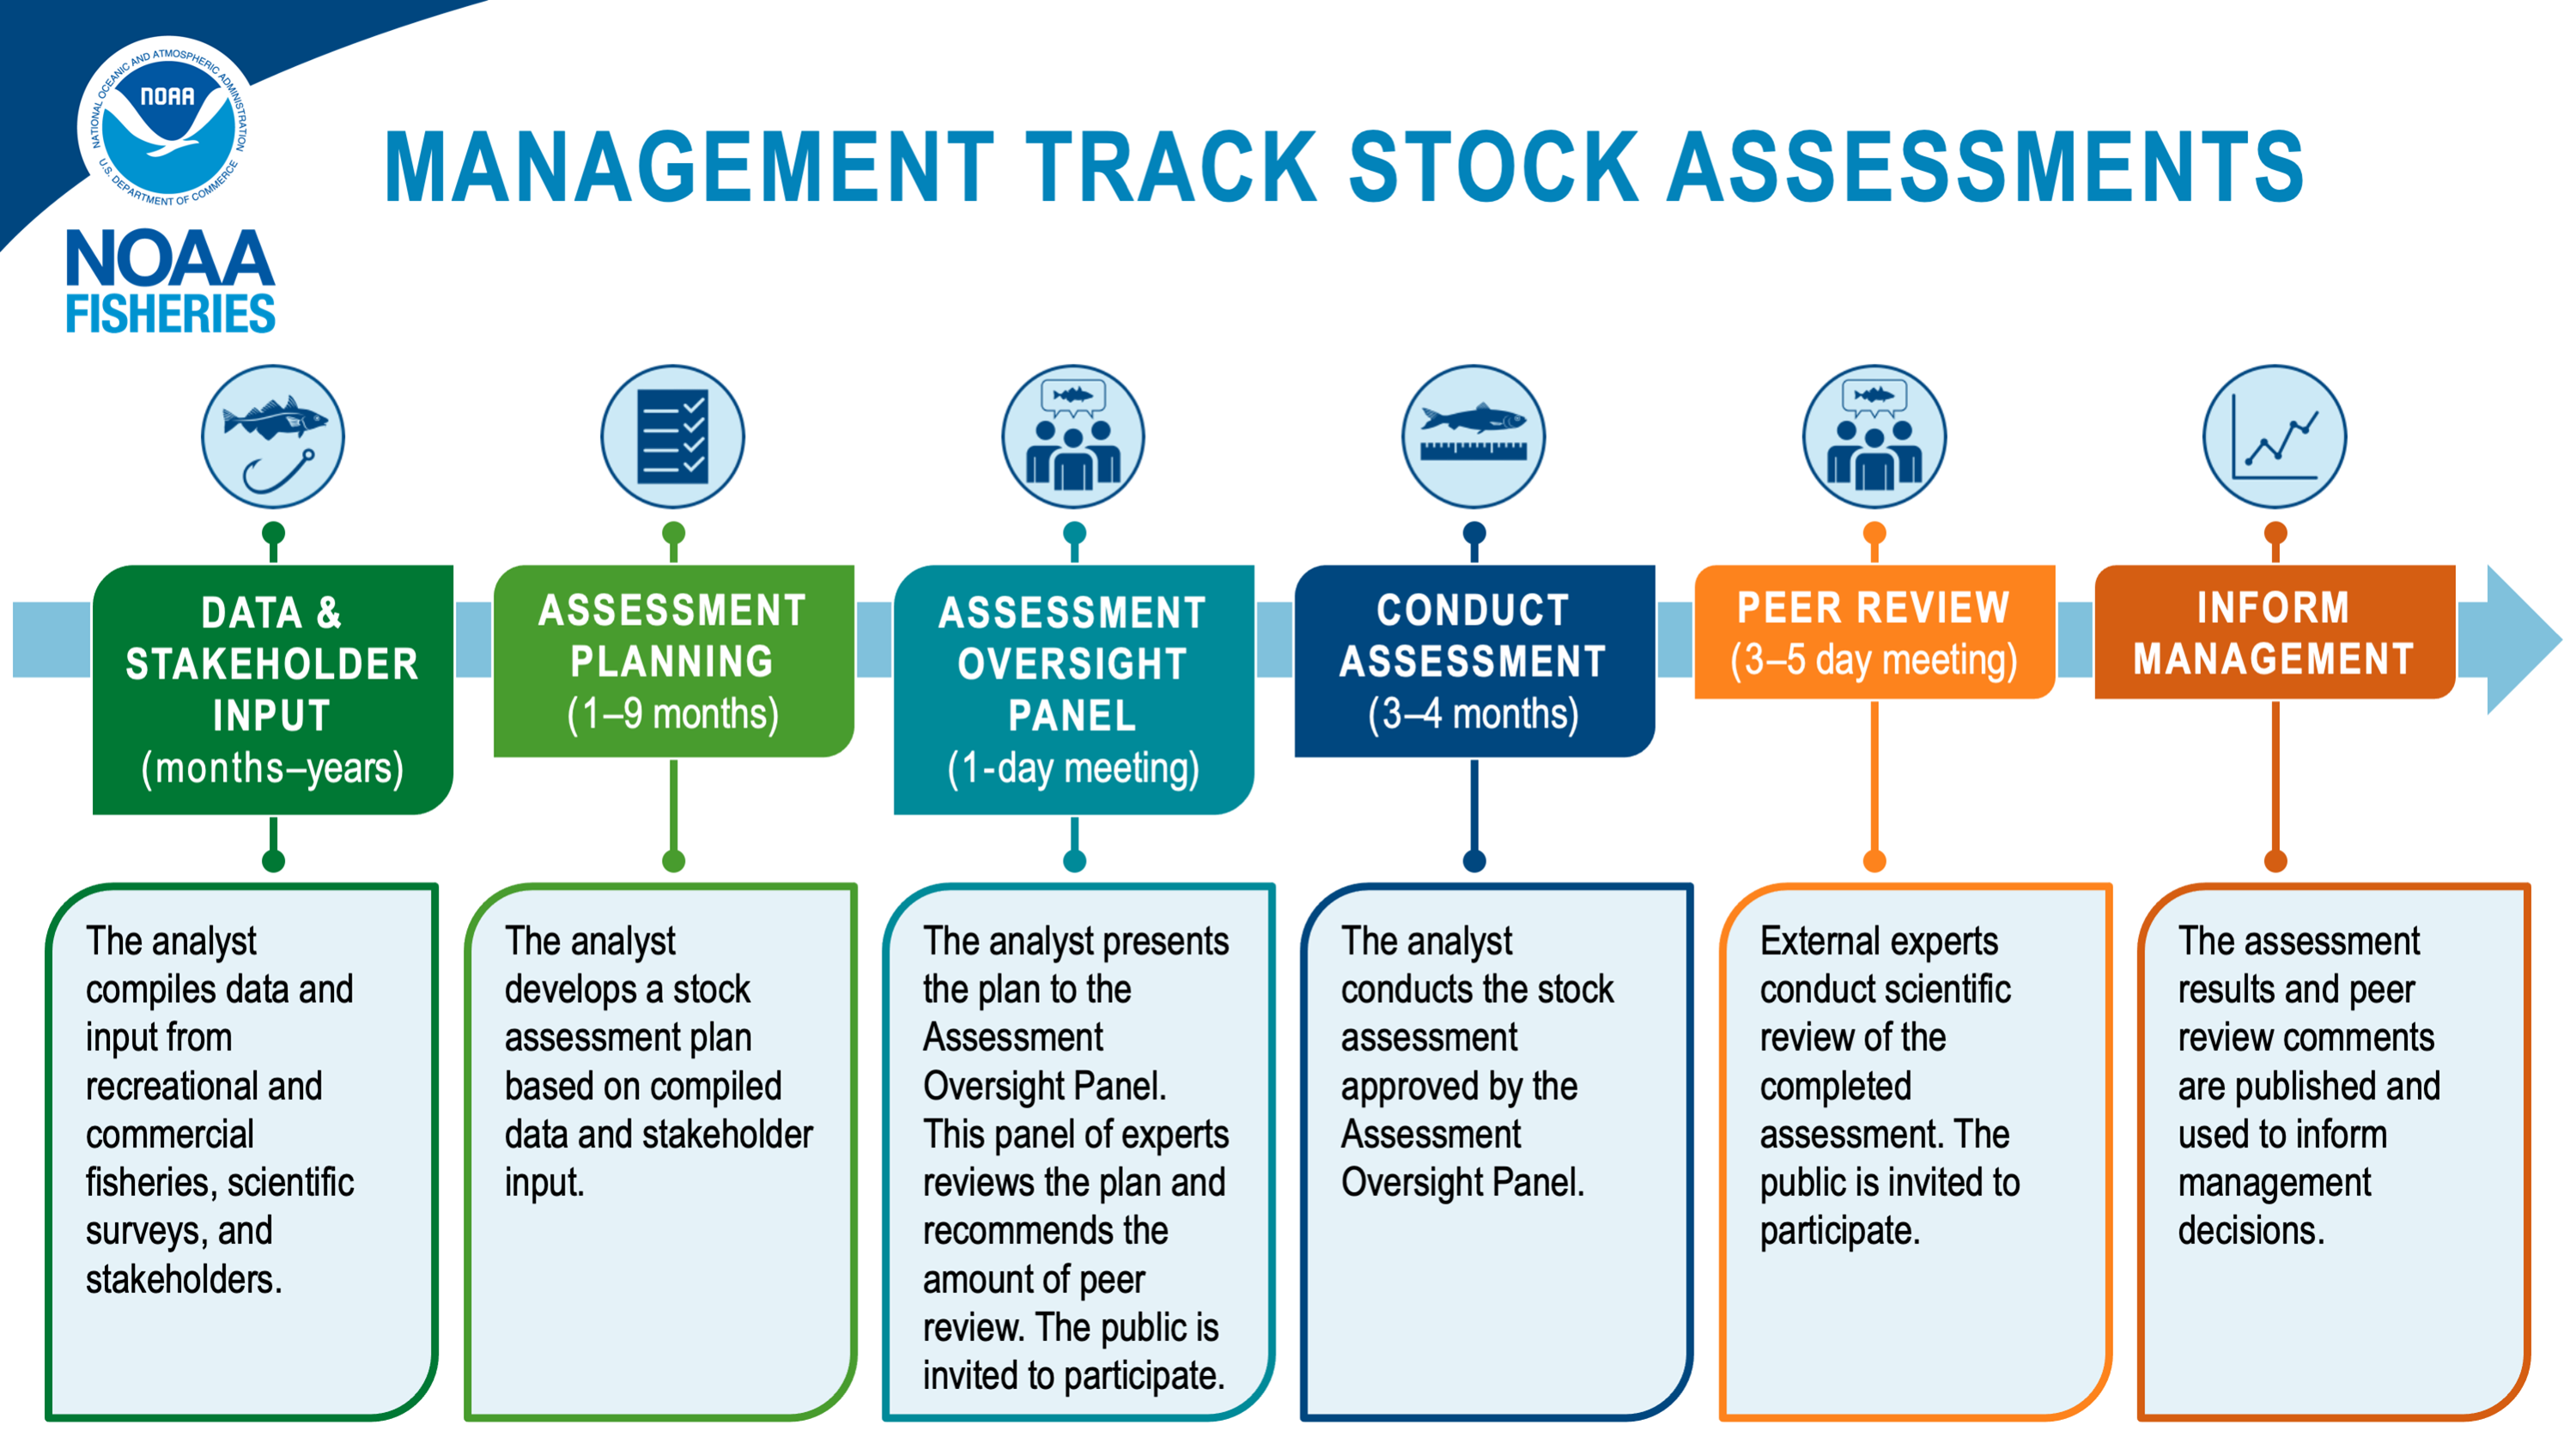 Timeline for management track assessments